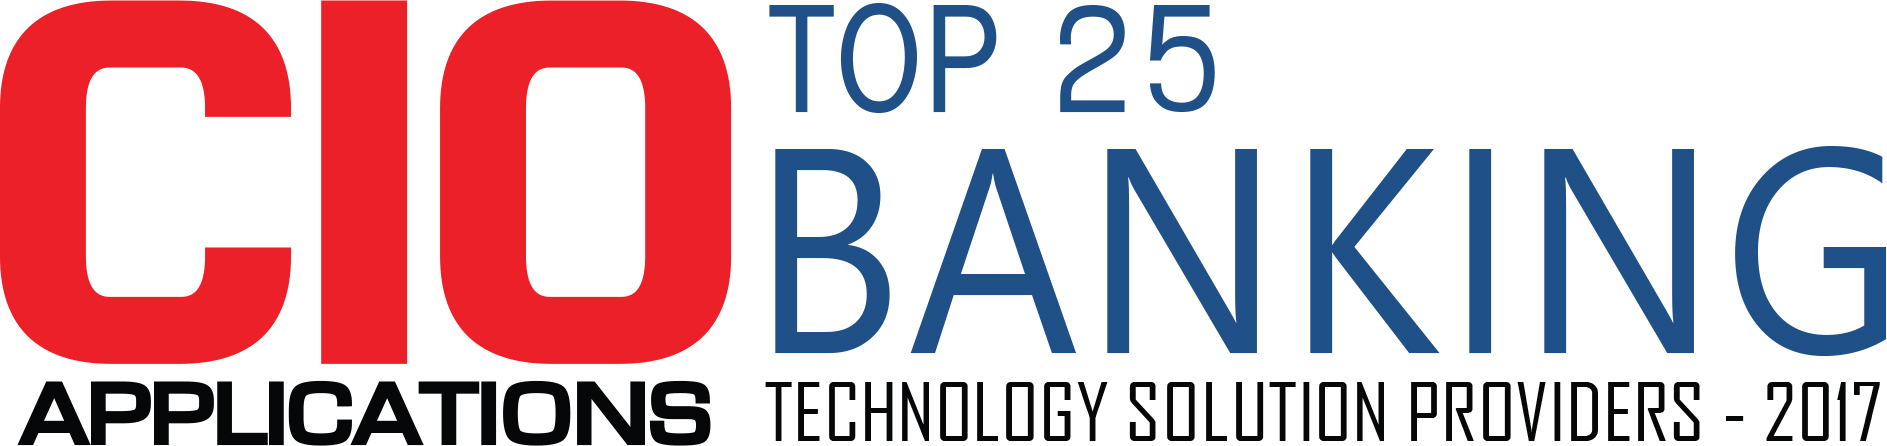 Top 25 Banking Technology Solution Companies - 2017